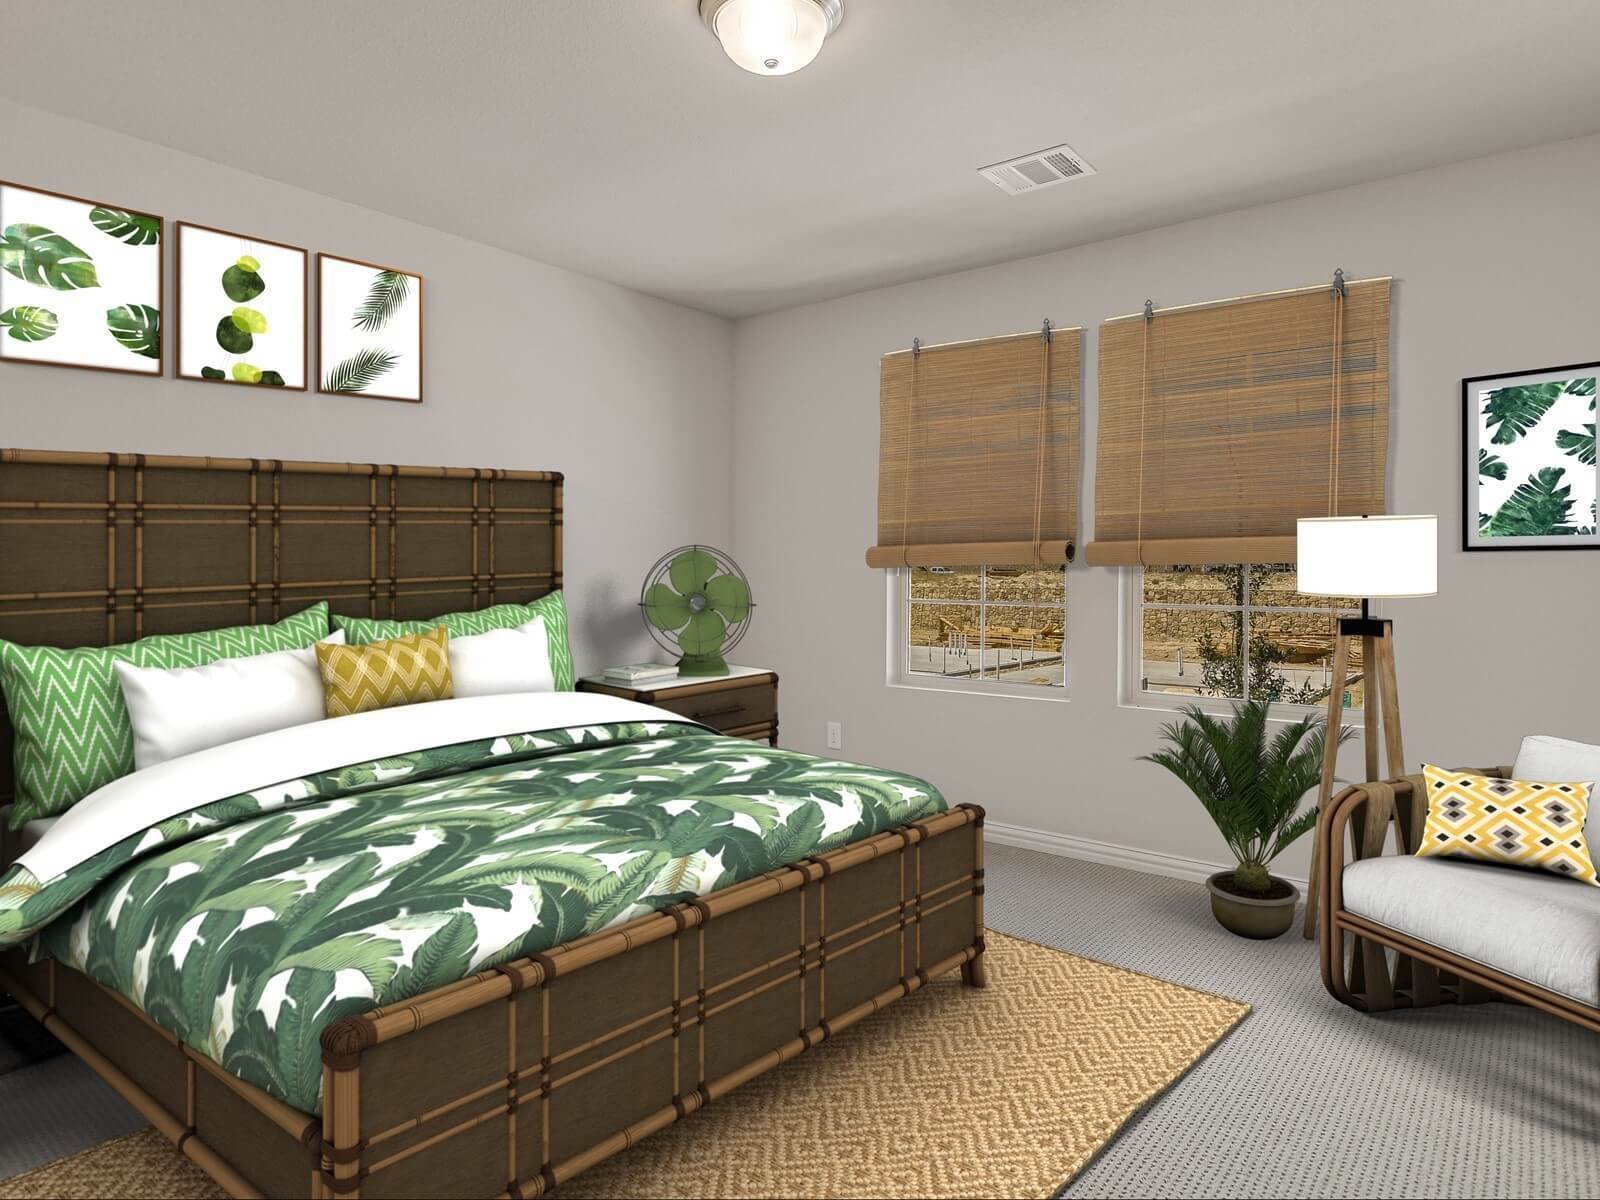 Bedroom featured in The Kessler By Meritage Homes in Fort Worth, TX